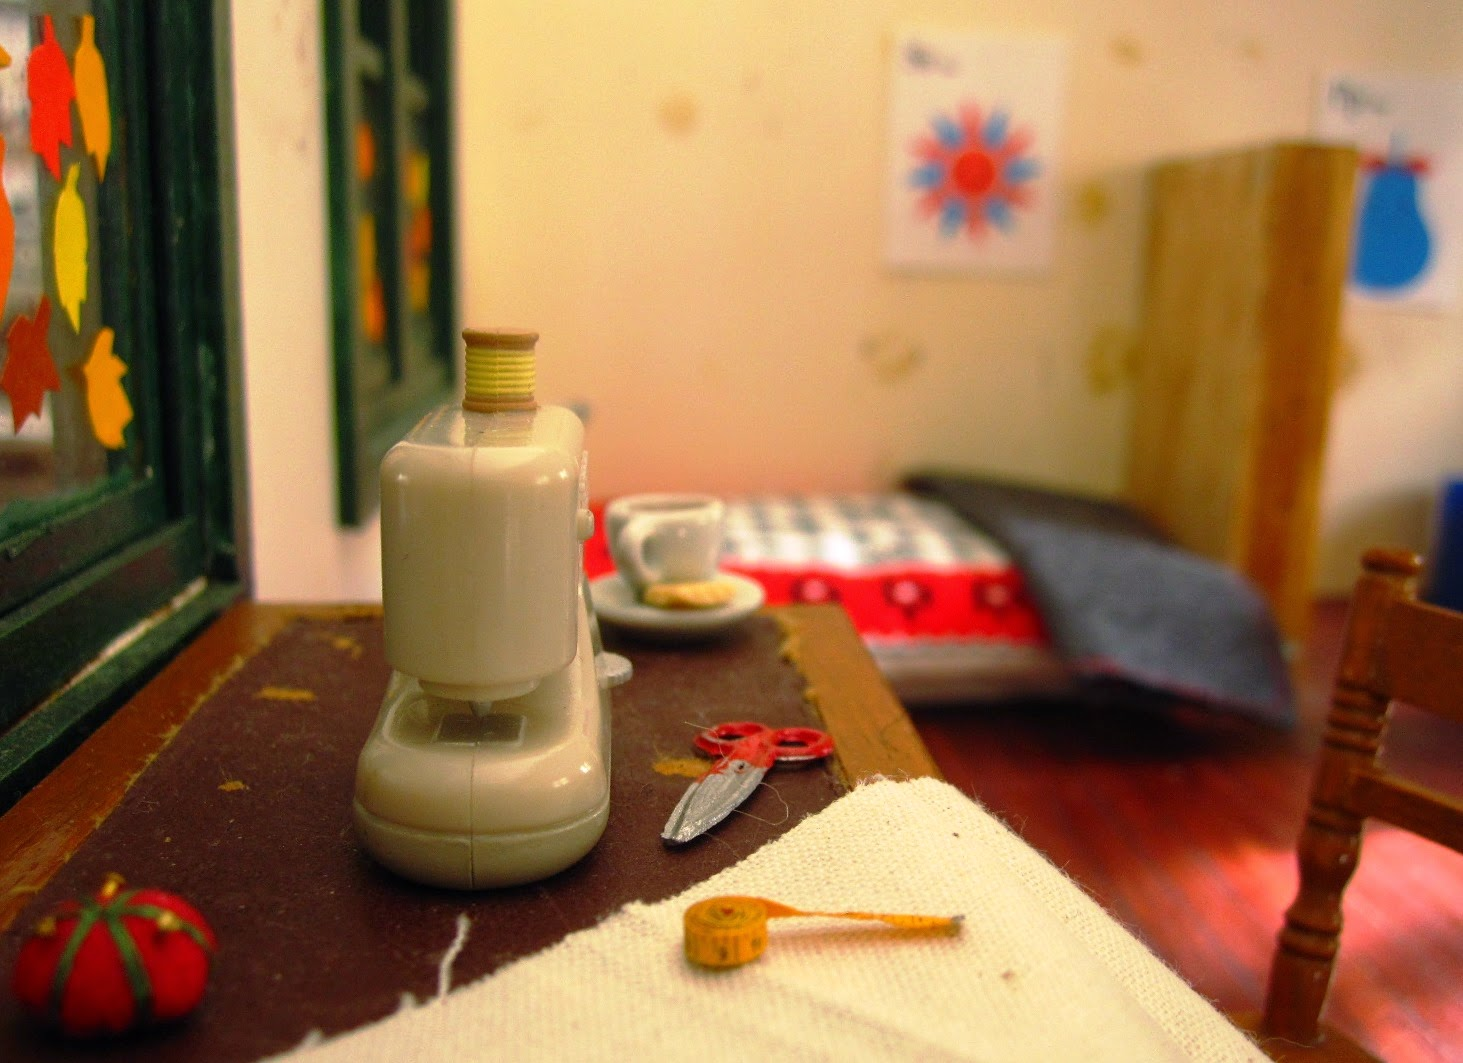 Miniature holiday home interior with a sewing machine, fabric, tape measure, pin cushion and scissors on an old desk.